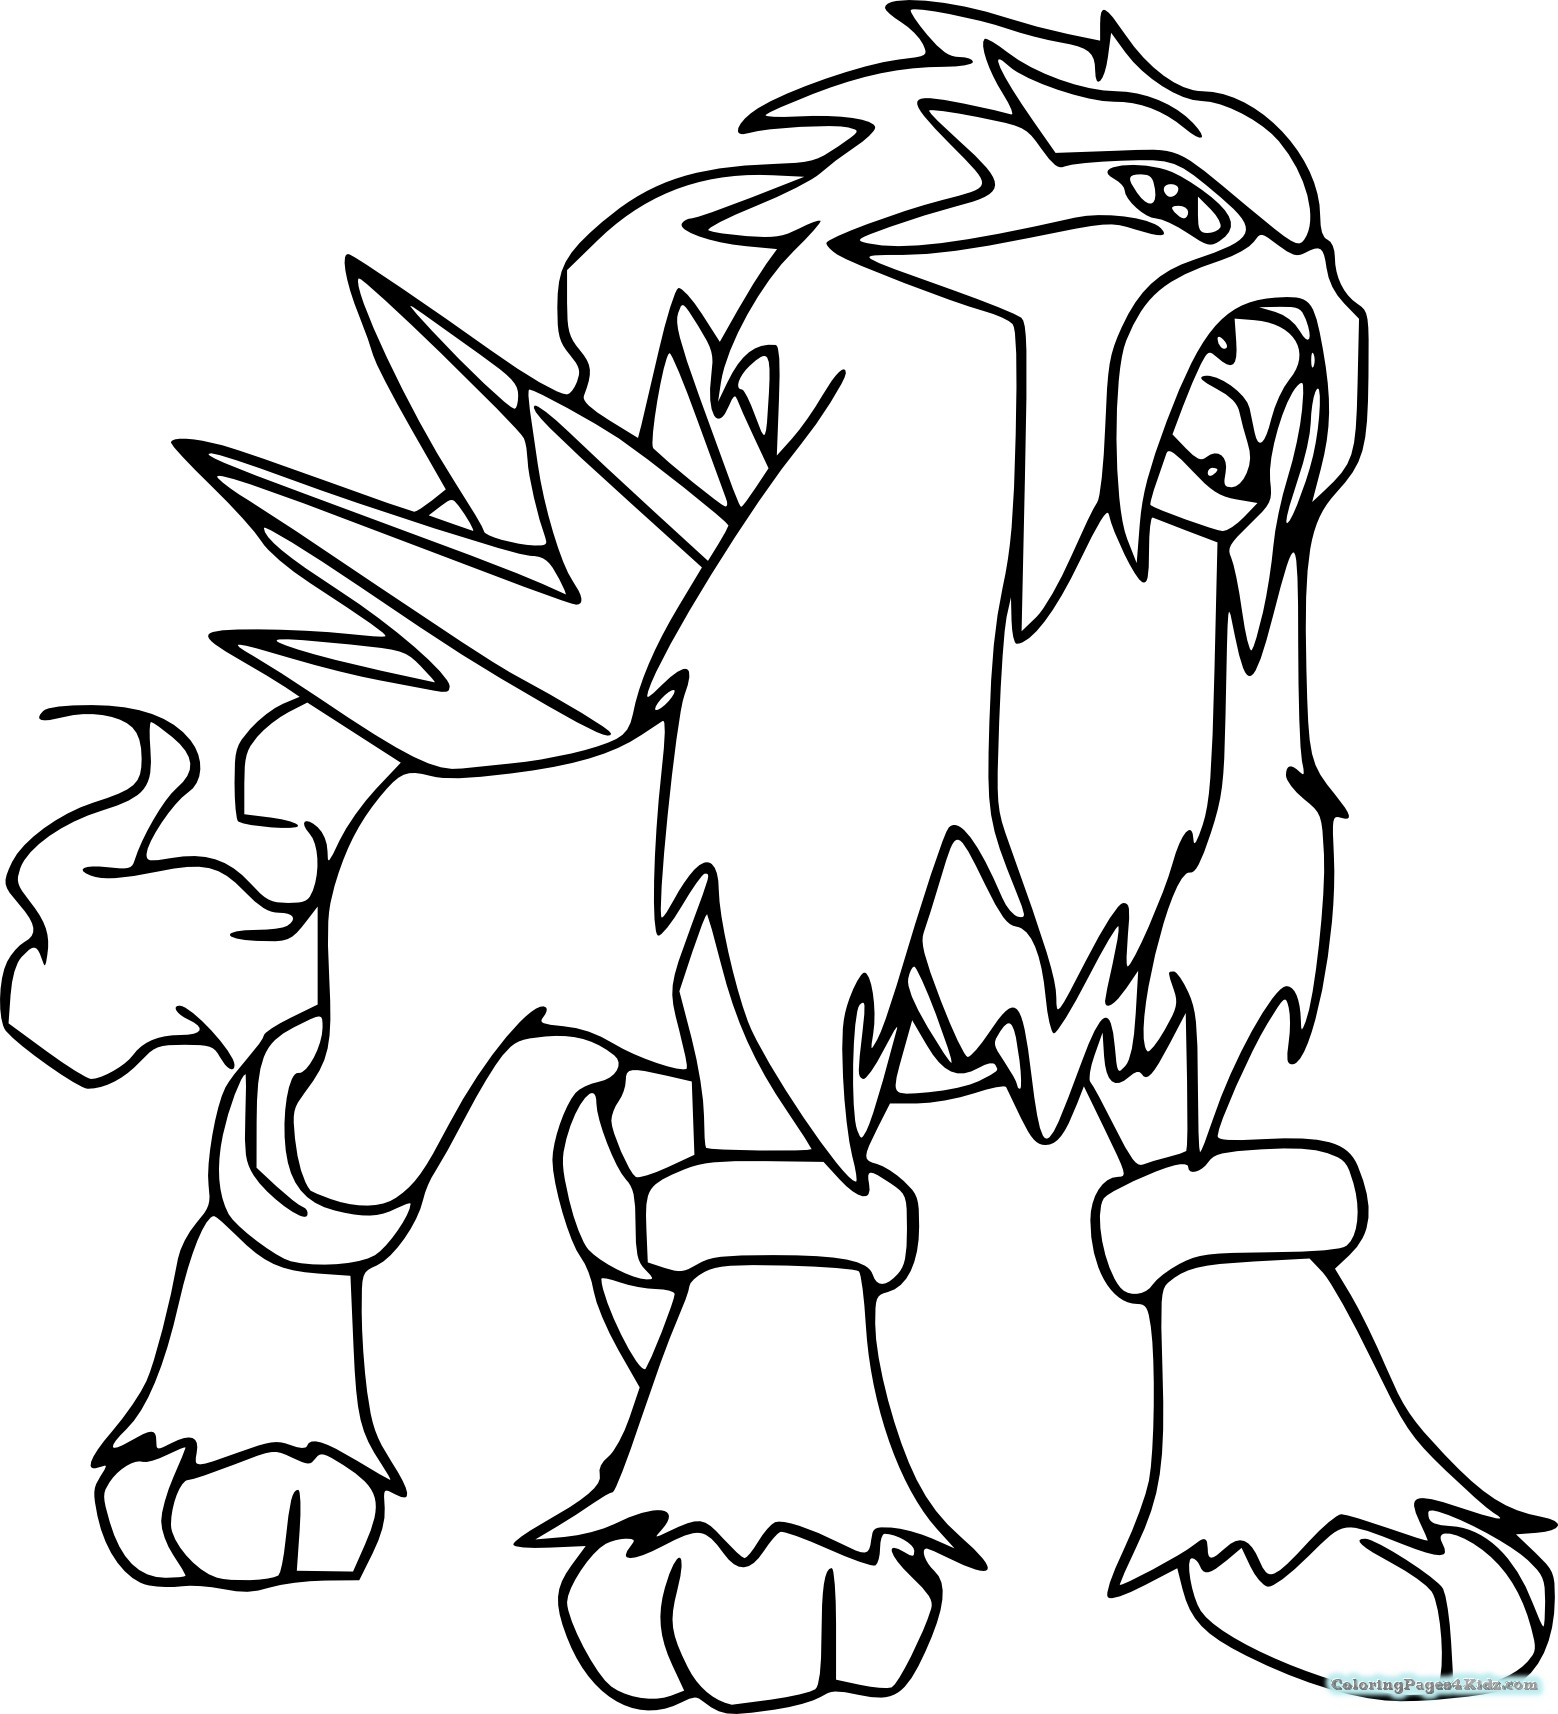 pokemon coloring sheets pokemon coloring pages for kids printable coloringmecom pokemon coloring sheets